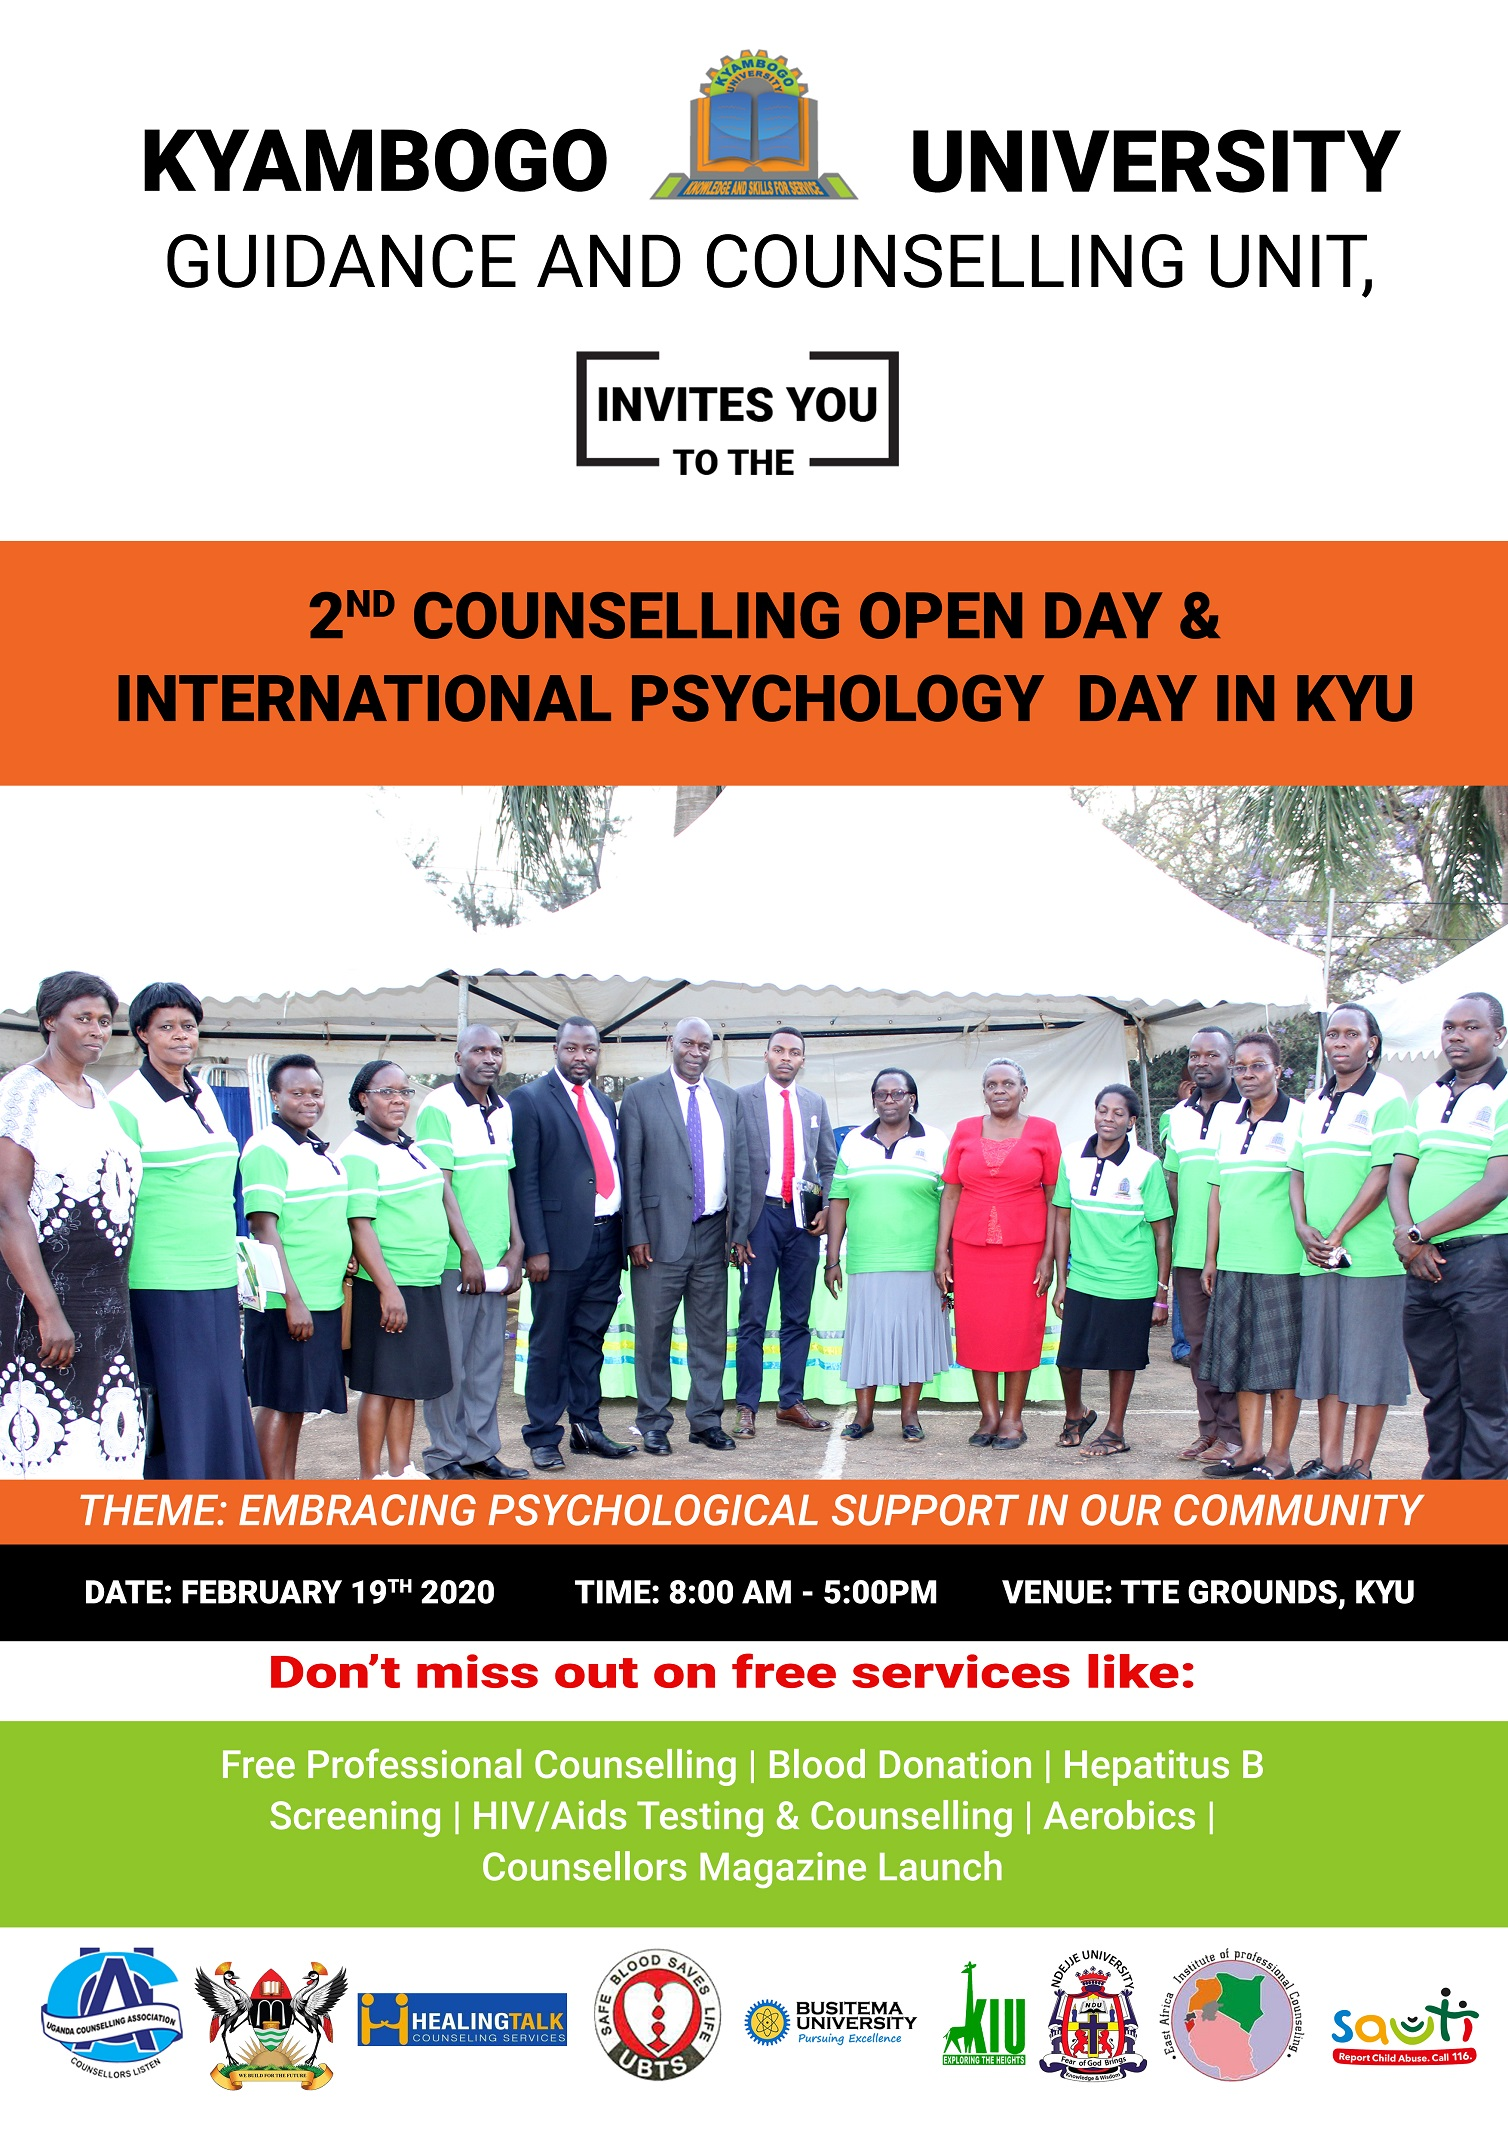 2nd counselling open day